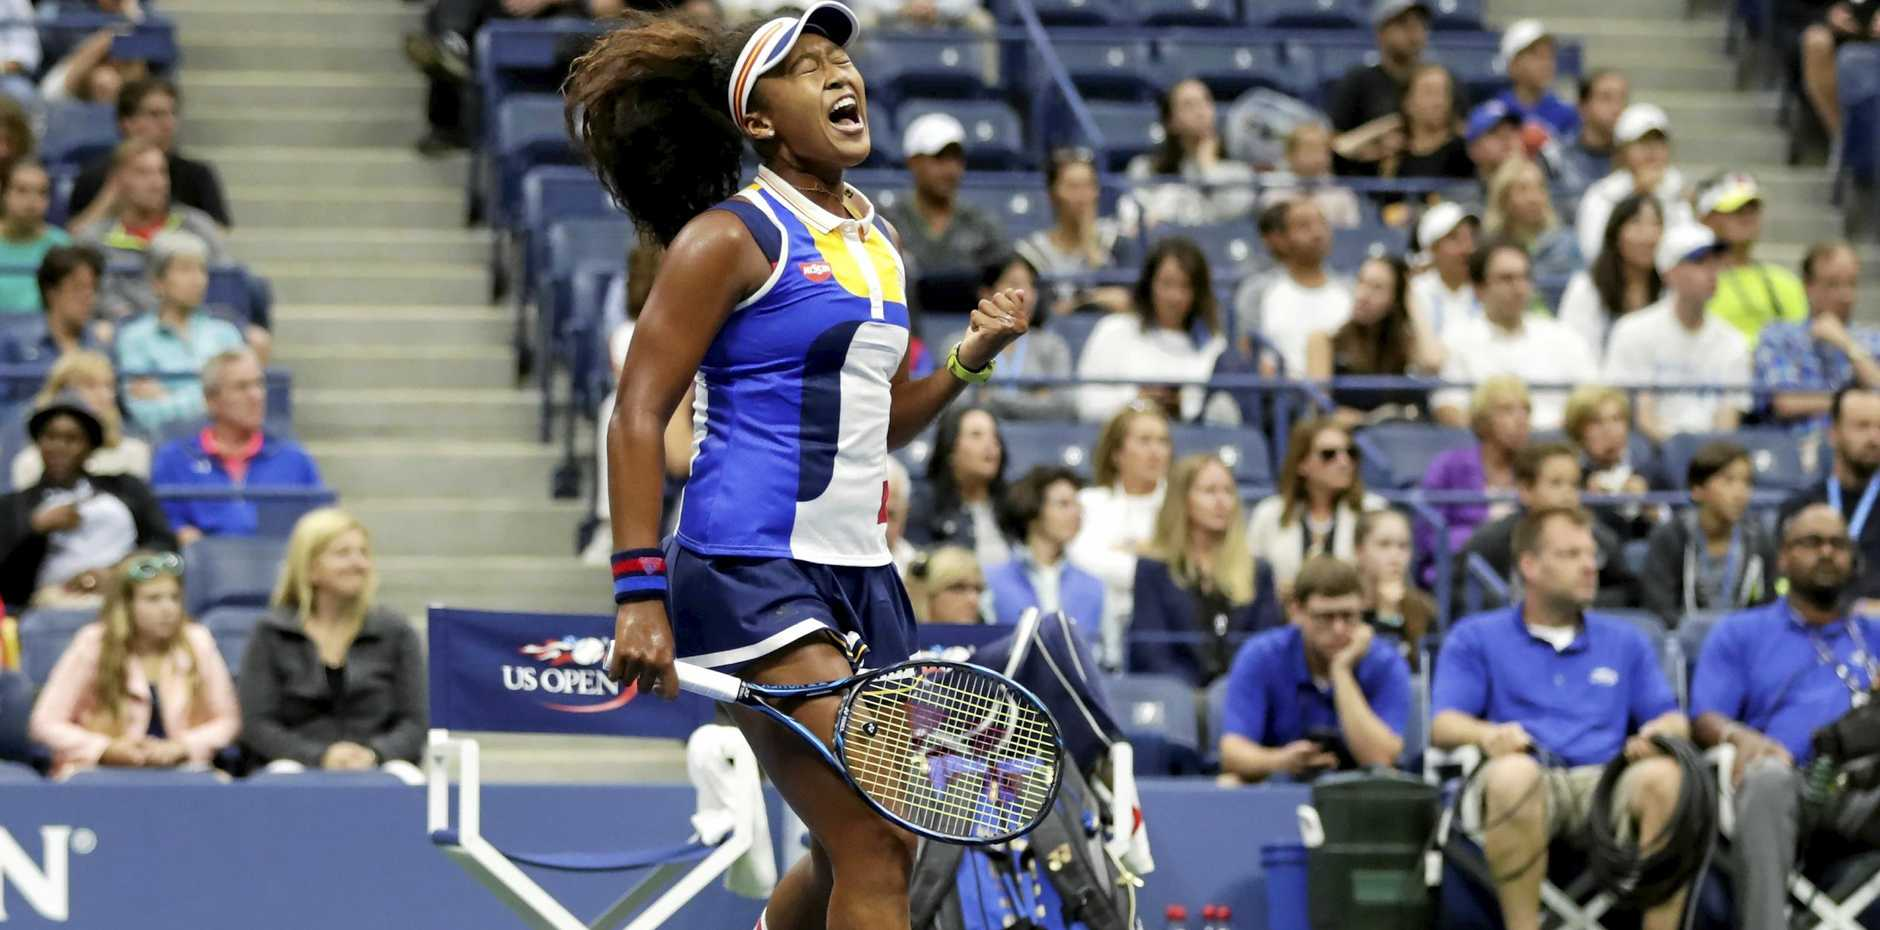 Naomi Osaka reacts after scoring a point against Angelique Kerber